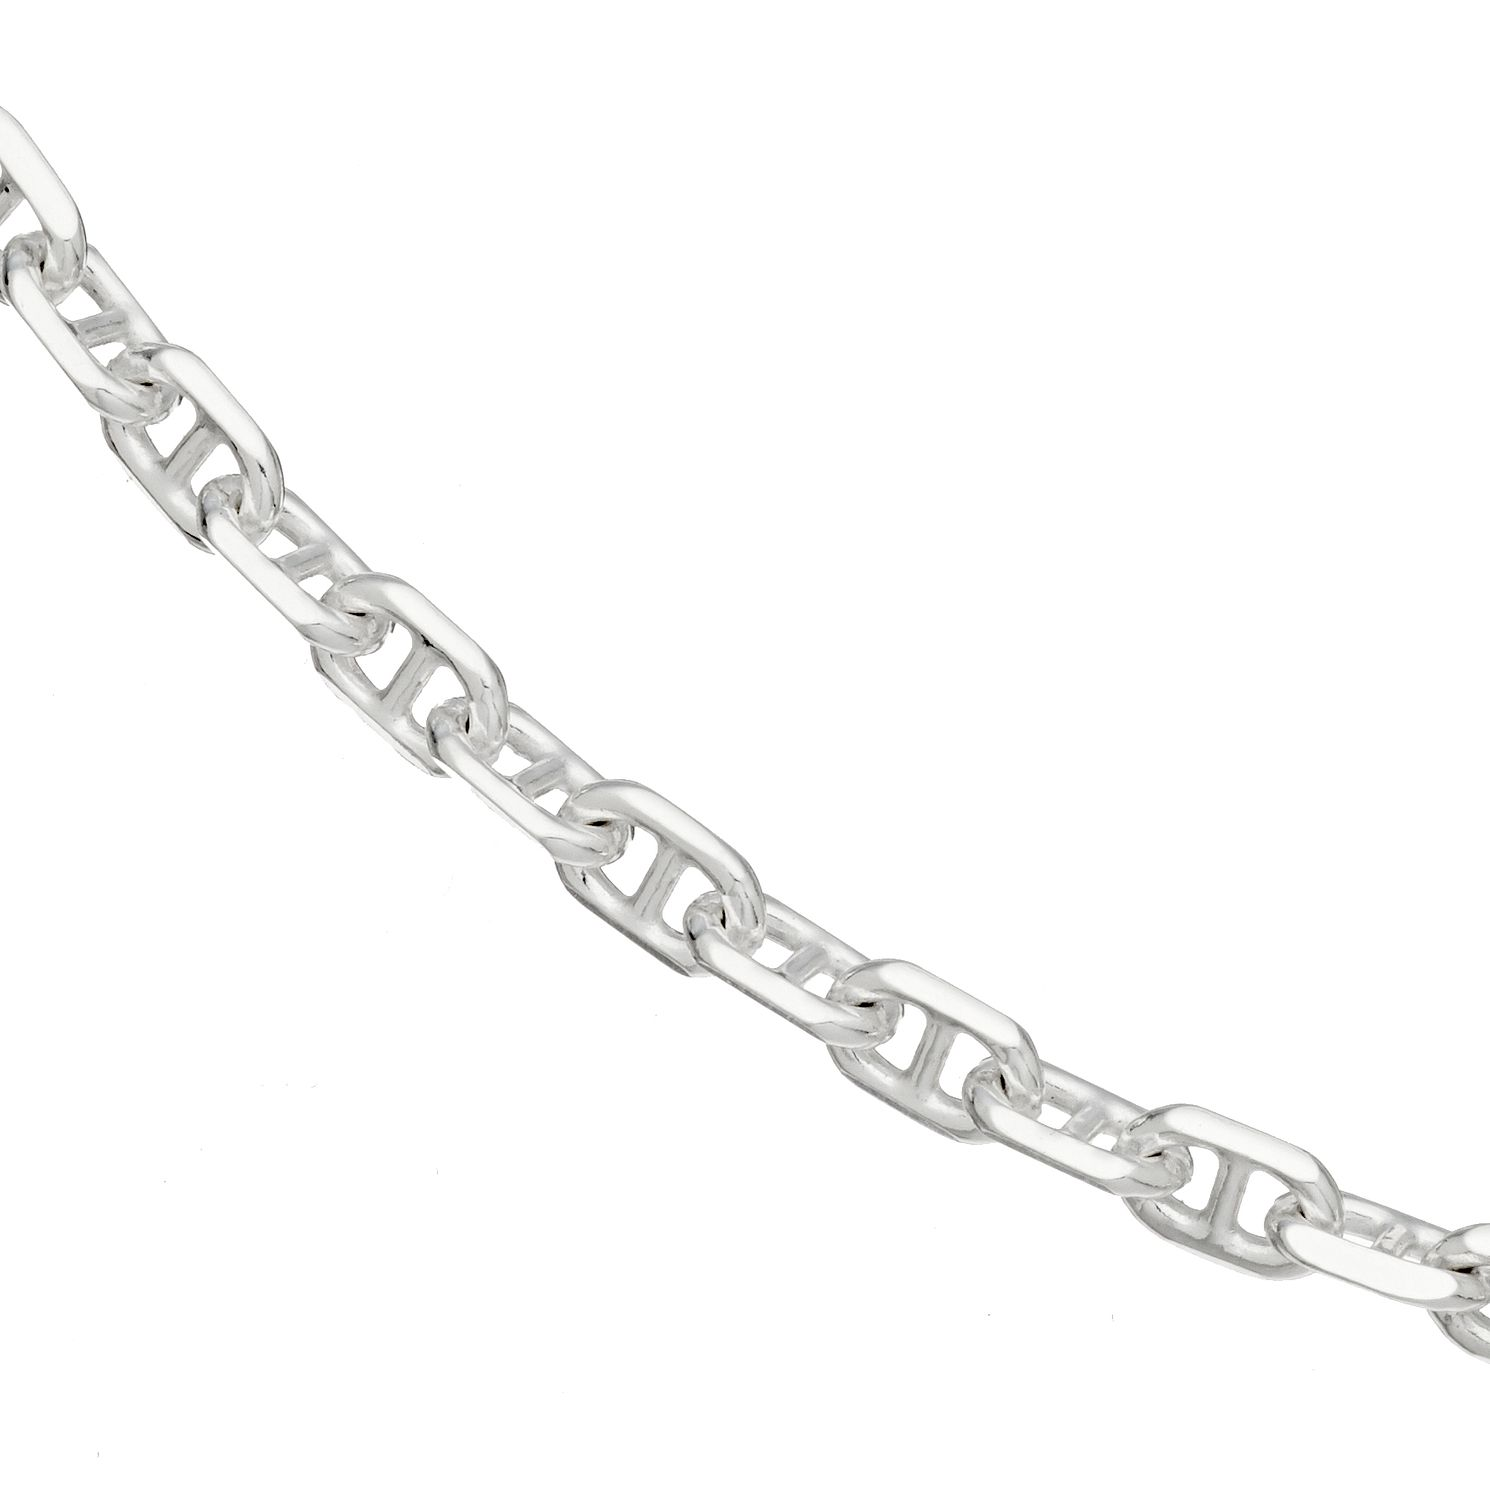 Silver Marina Chain Necklace 18 inches - 100g - Product number 4841549